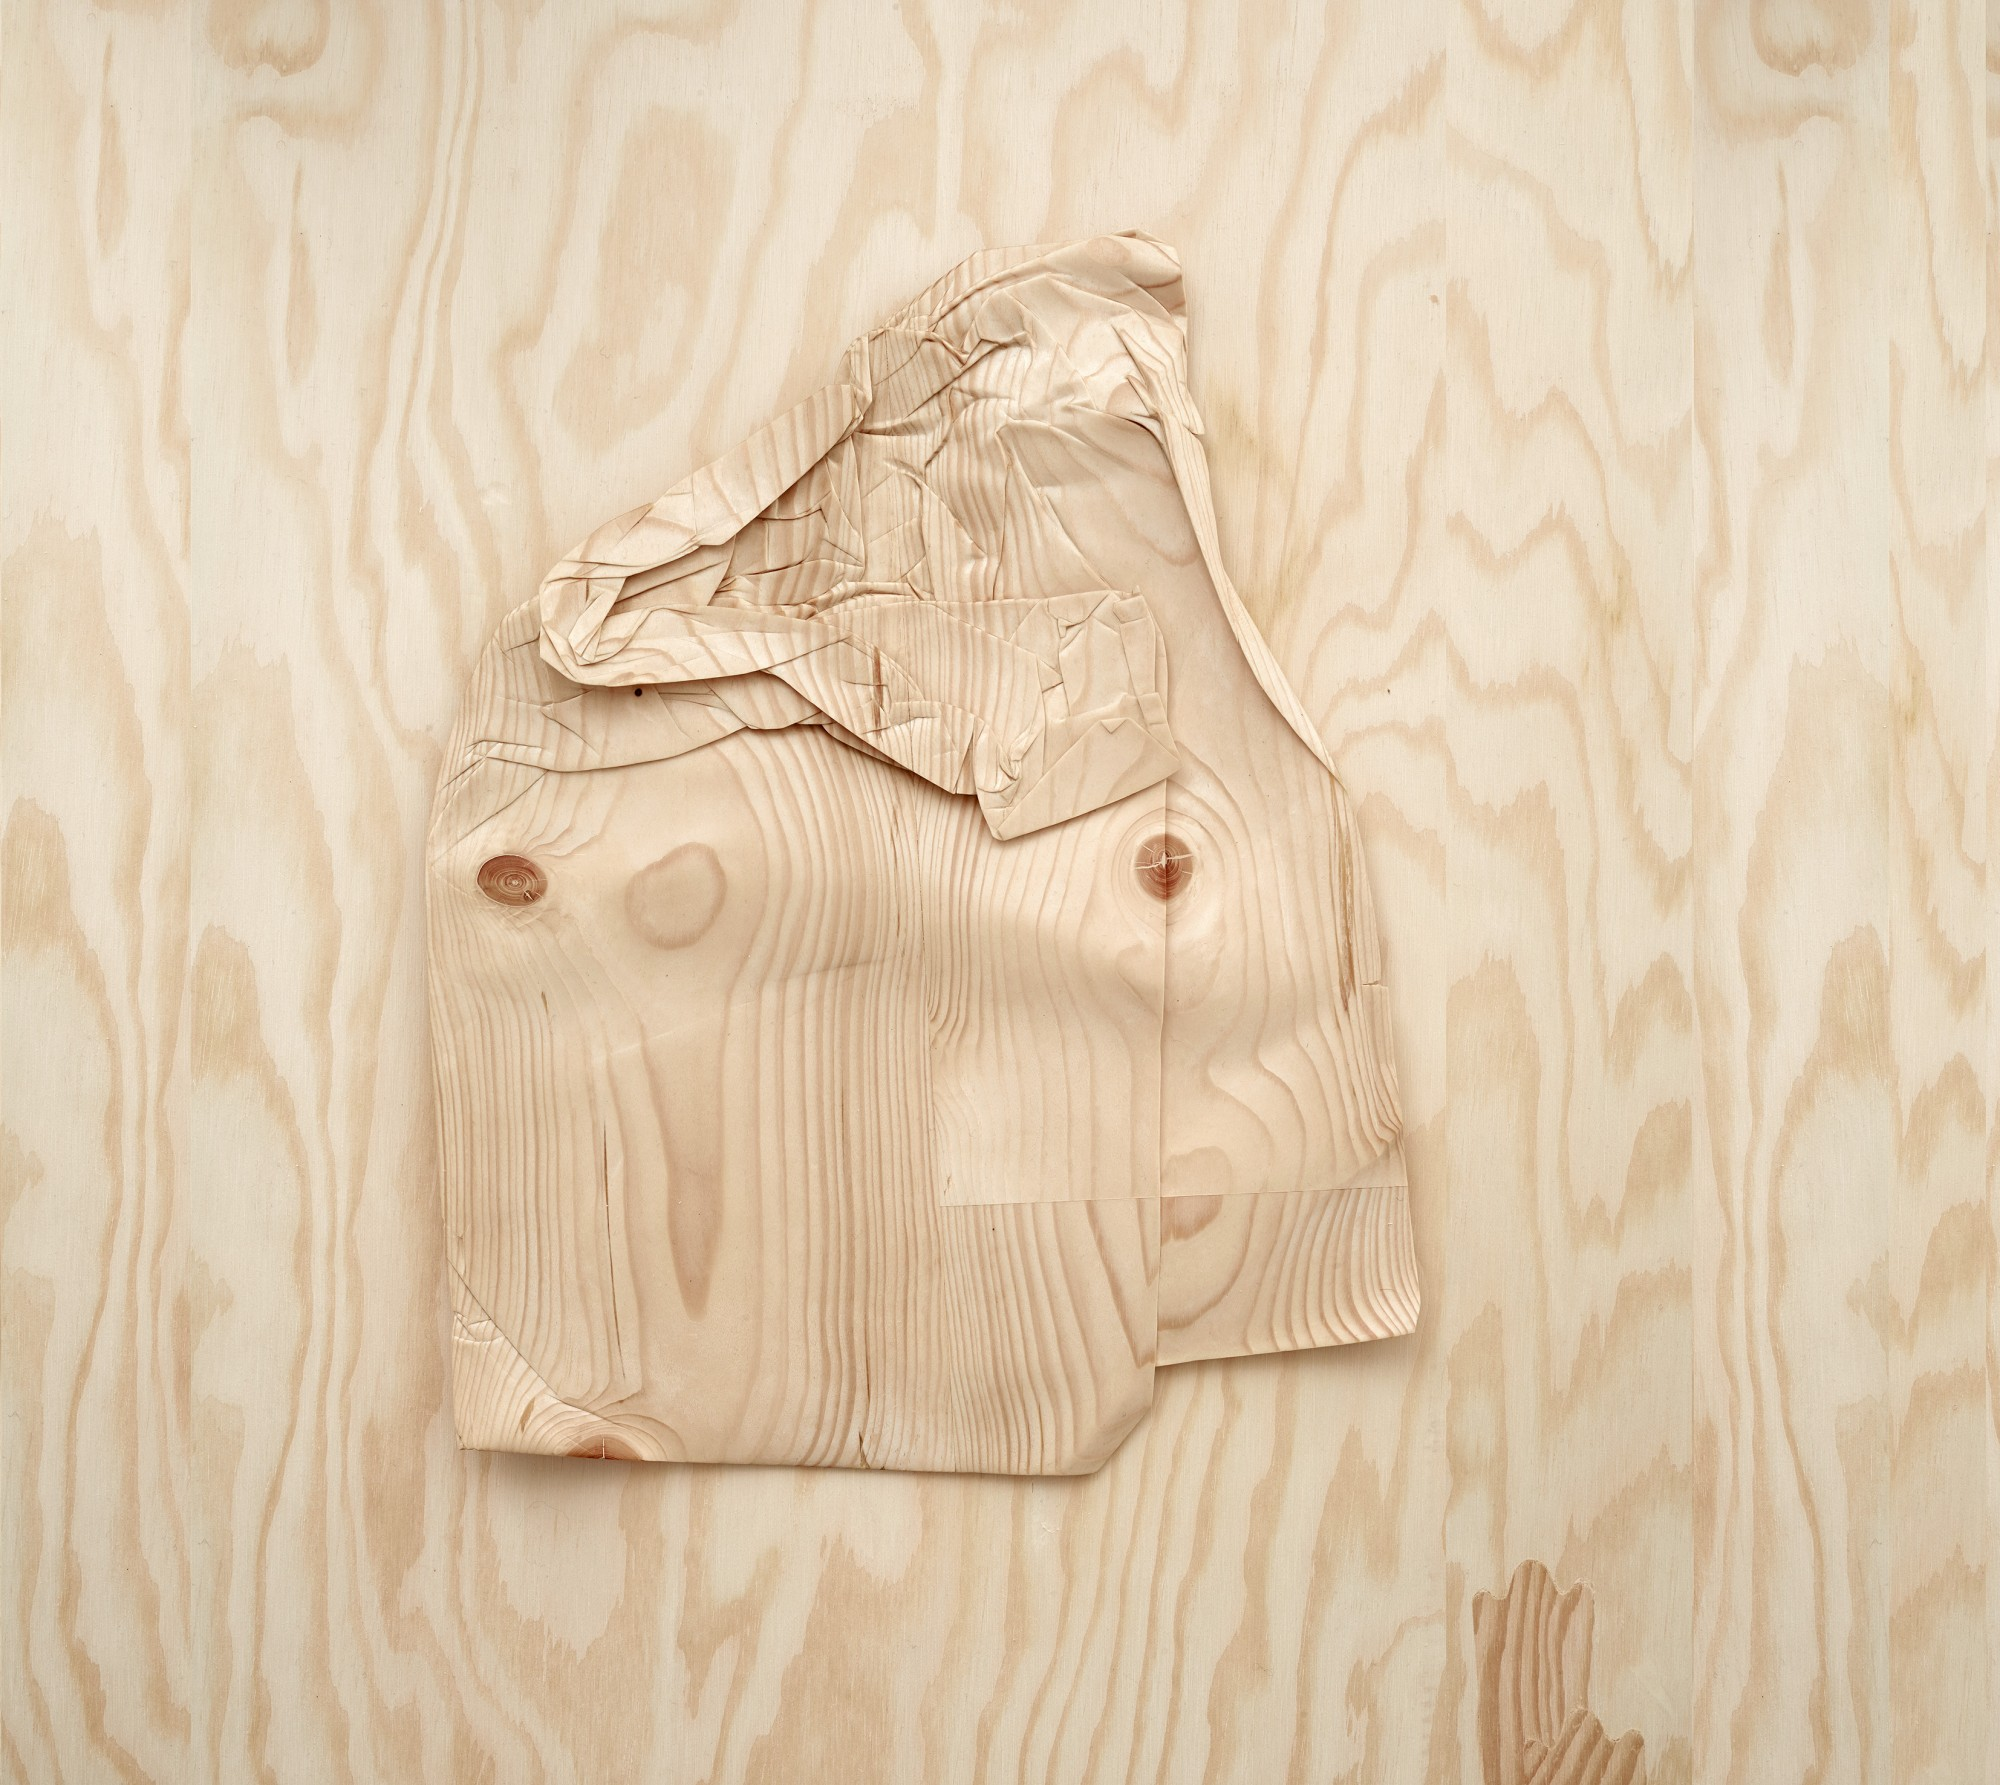 From the series One-to-One, 2014. Wood. Dimensions 37 x 29 x 3 cm